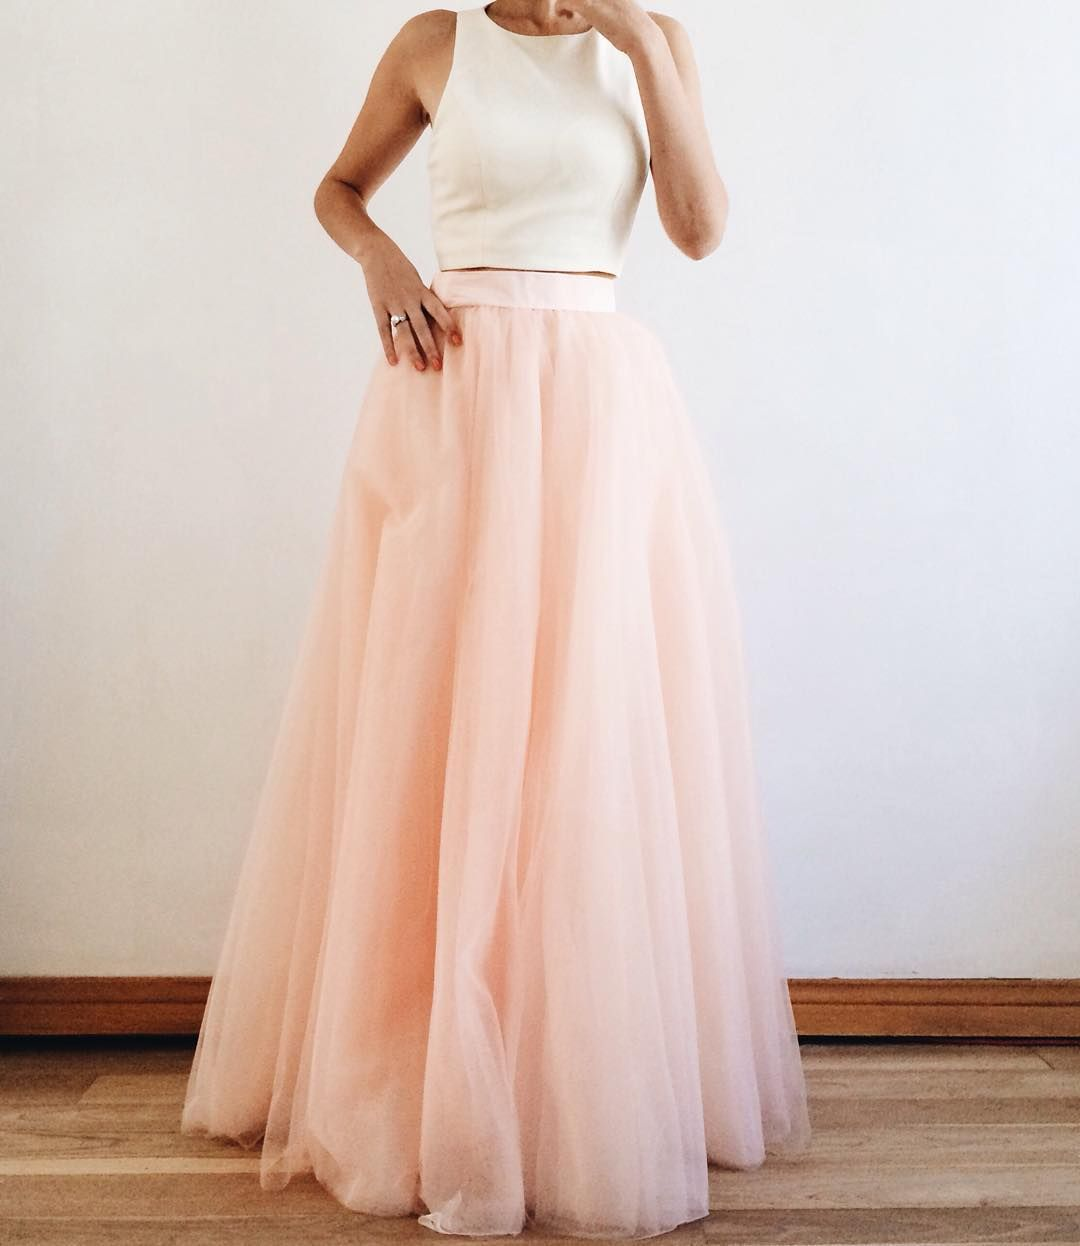 Wedding gown with red accents  Pin by Isabella Audetat on Prommmm  Pinterest  Smaller waist Prom